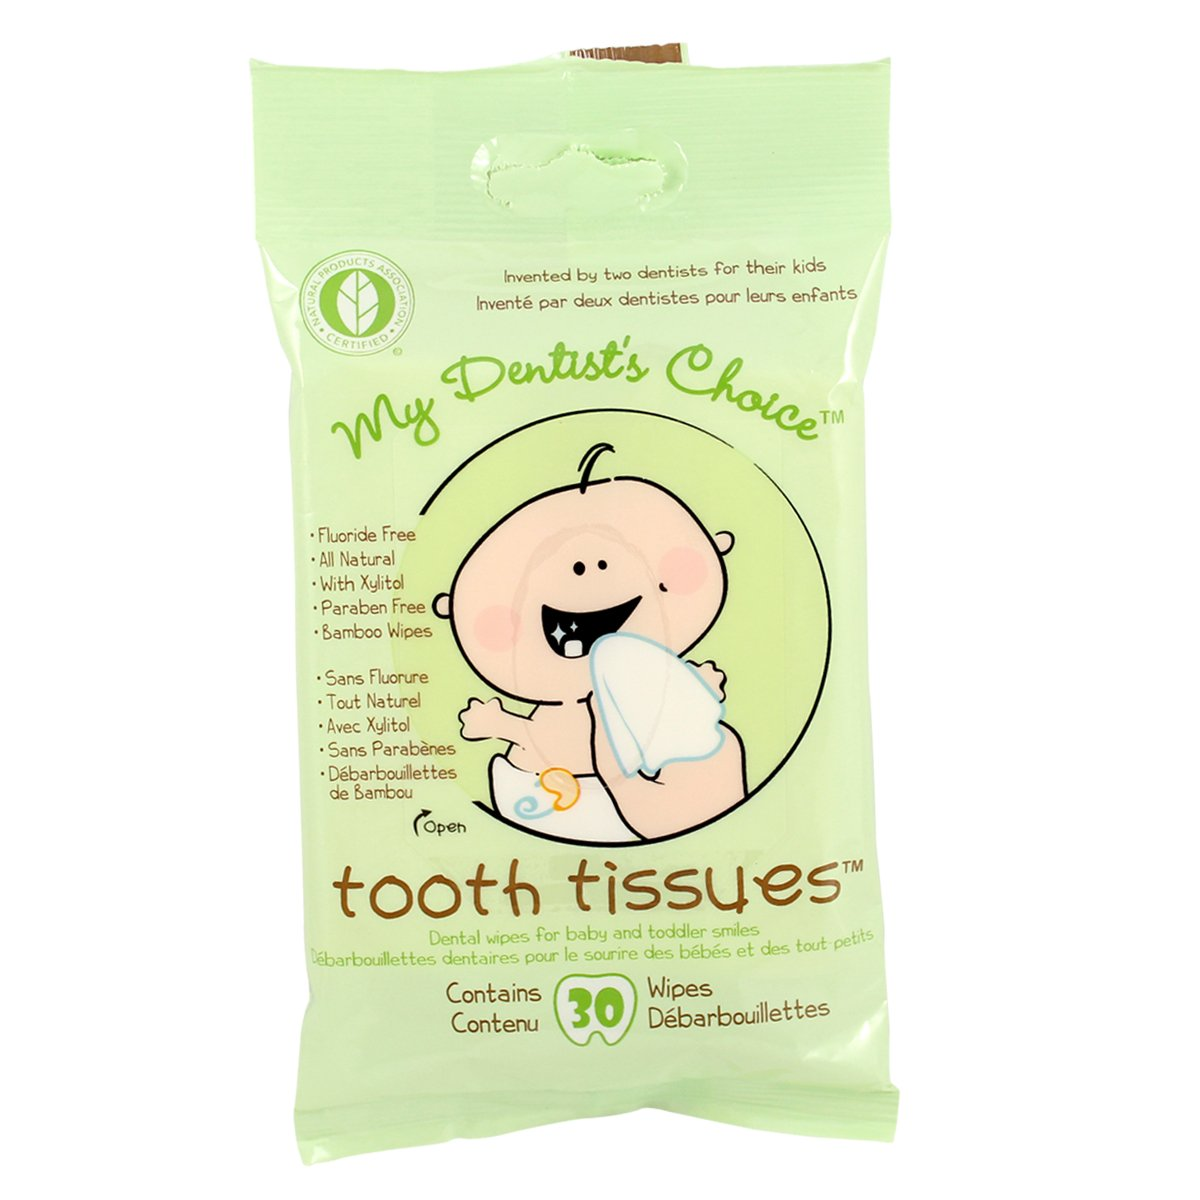 Amazon.com: My Dentist Choice Tooth Tissues, Wipes, 30 Count (Pack of 2): Beauty